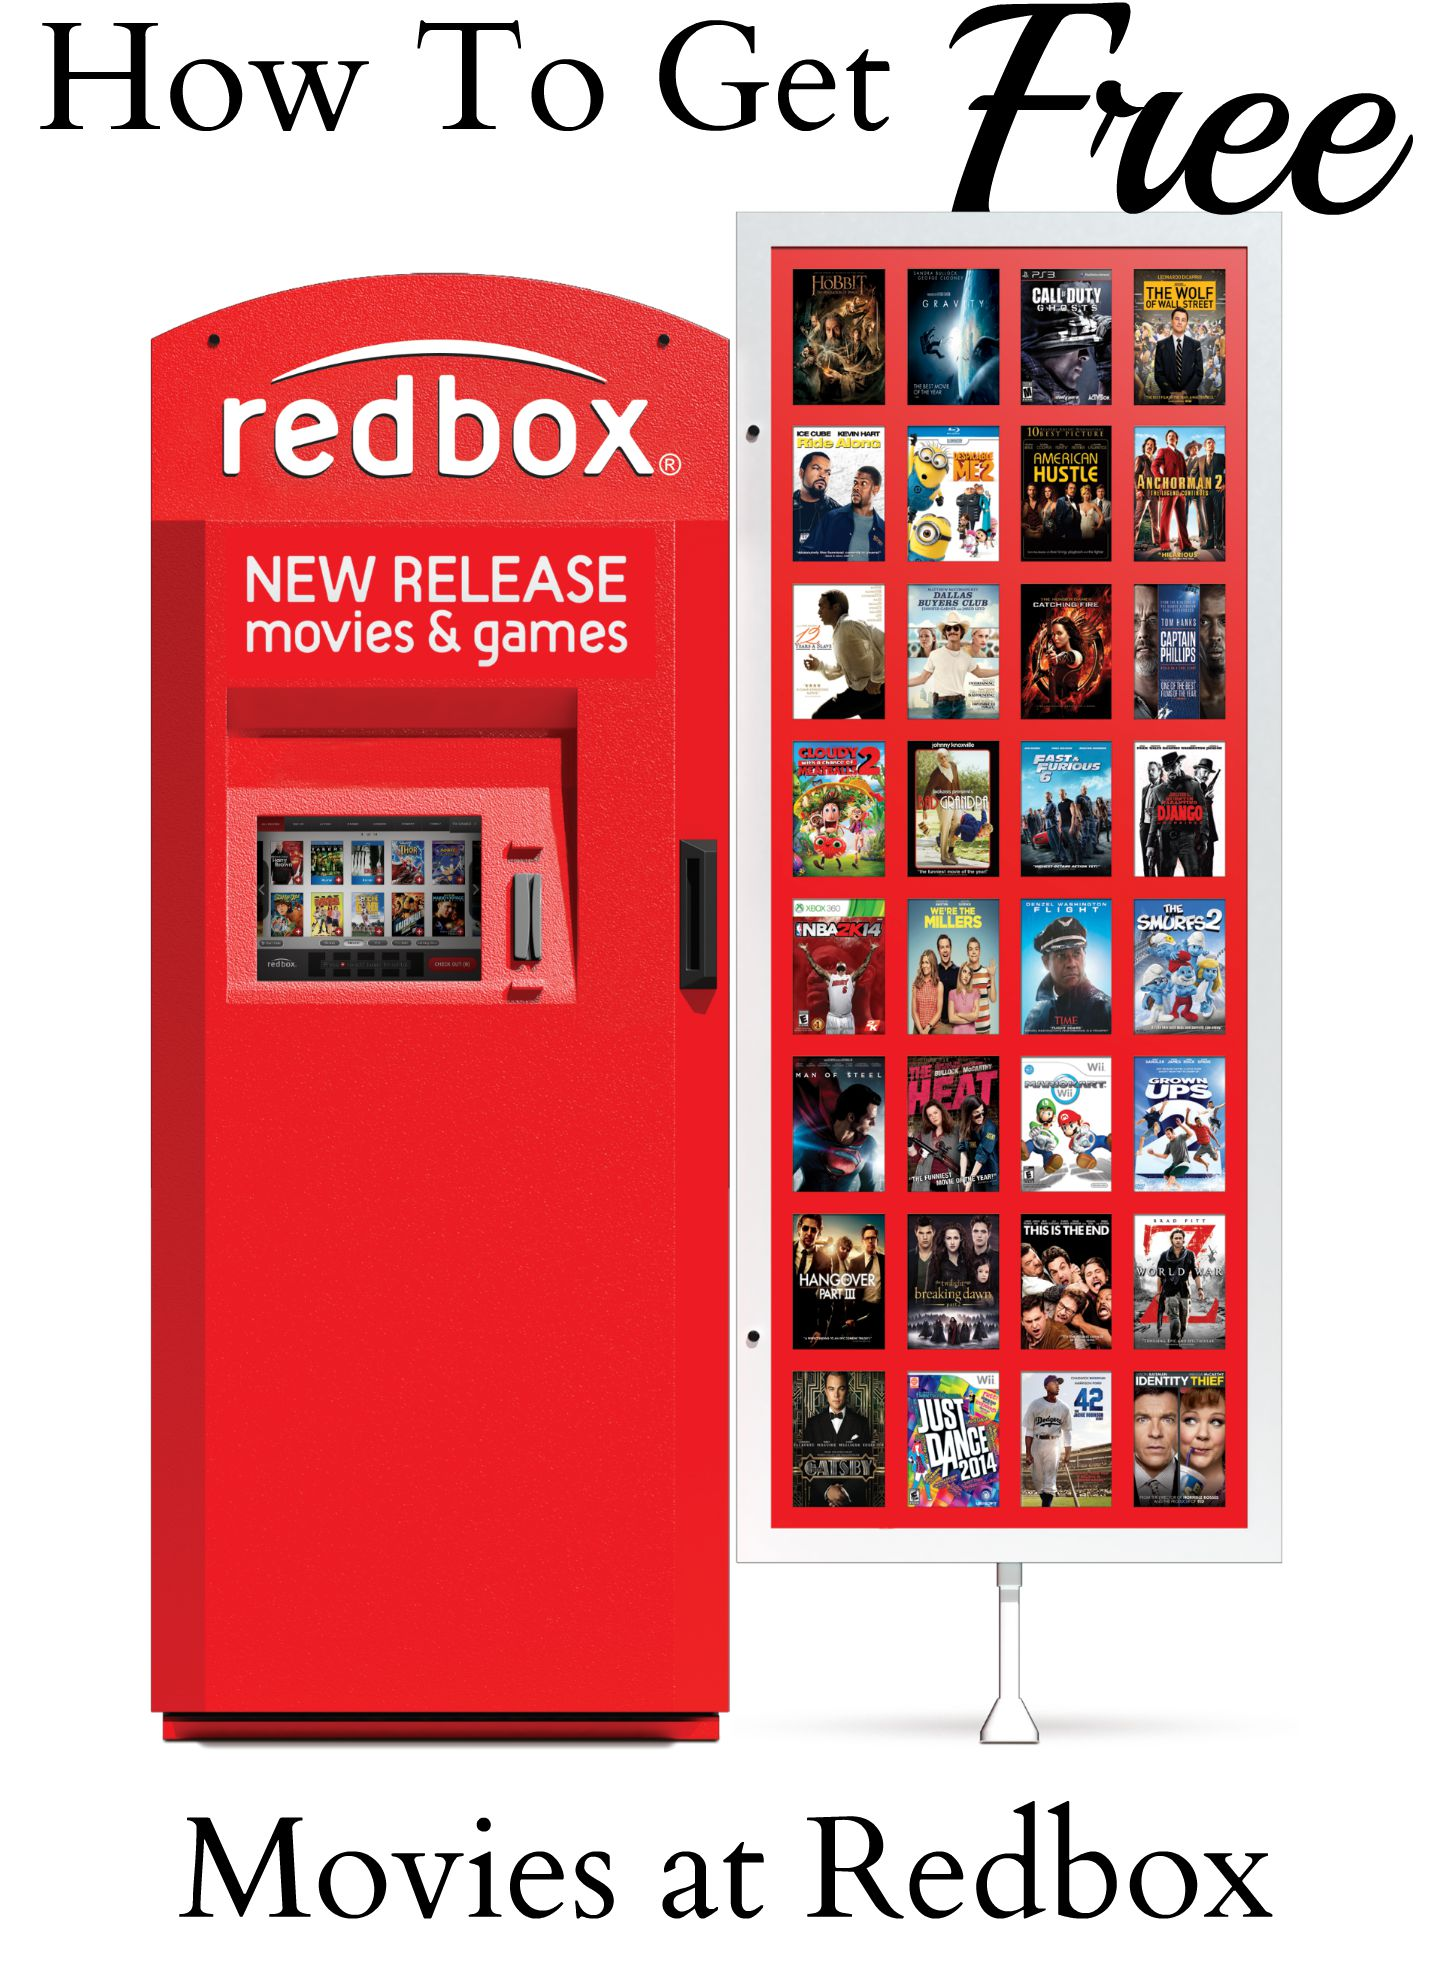 The best movies on Redbox right now include many films of Paste's Best Movies of and Best Movies of (So Far), including some hidden gems among the big-budget movies plastered all over the Redbox display. Our guide to movies at Redbox includes Oscar winners, kids movies, comedies, indie film, biopics and horror.